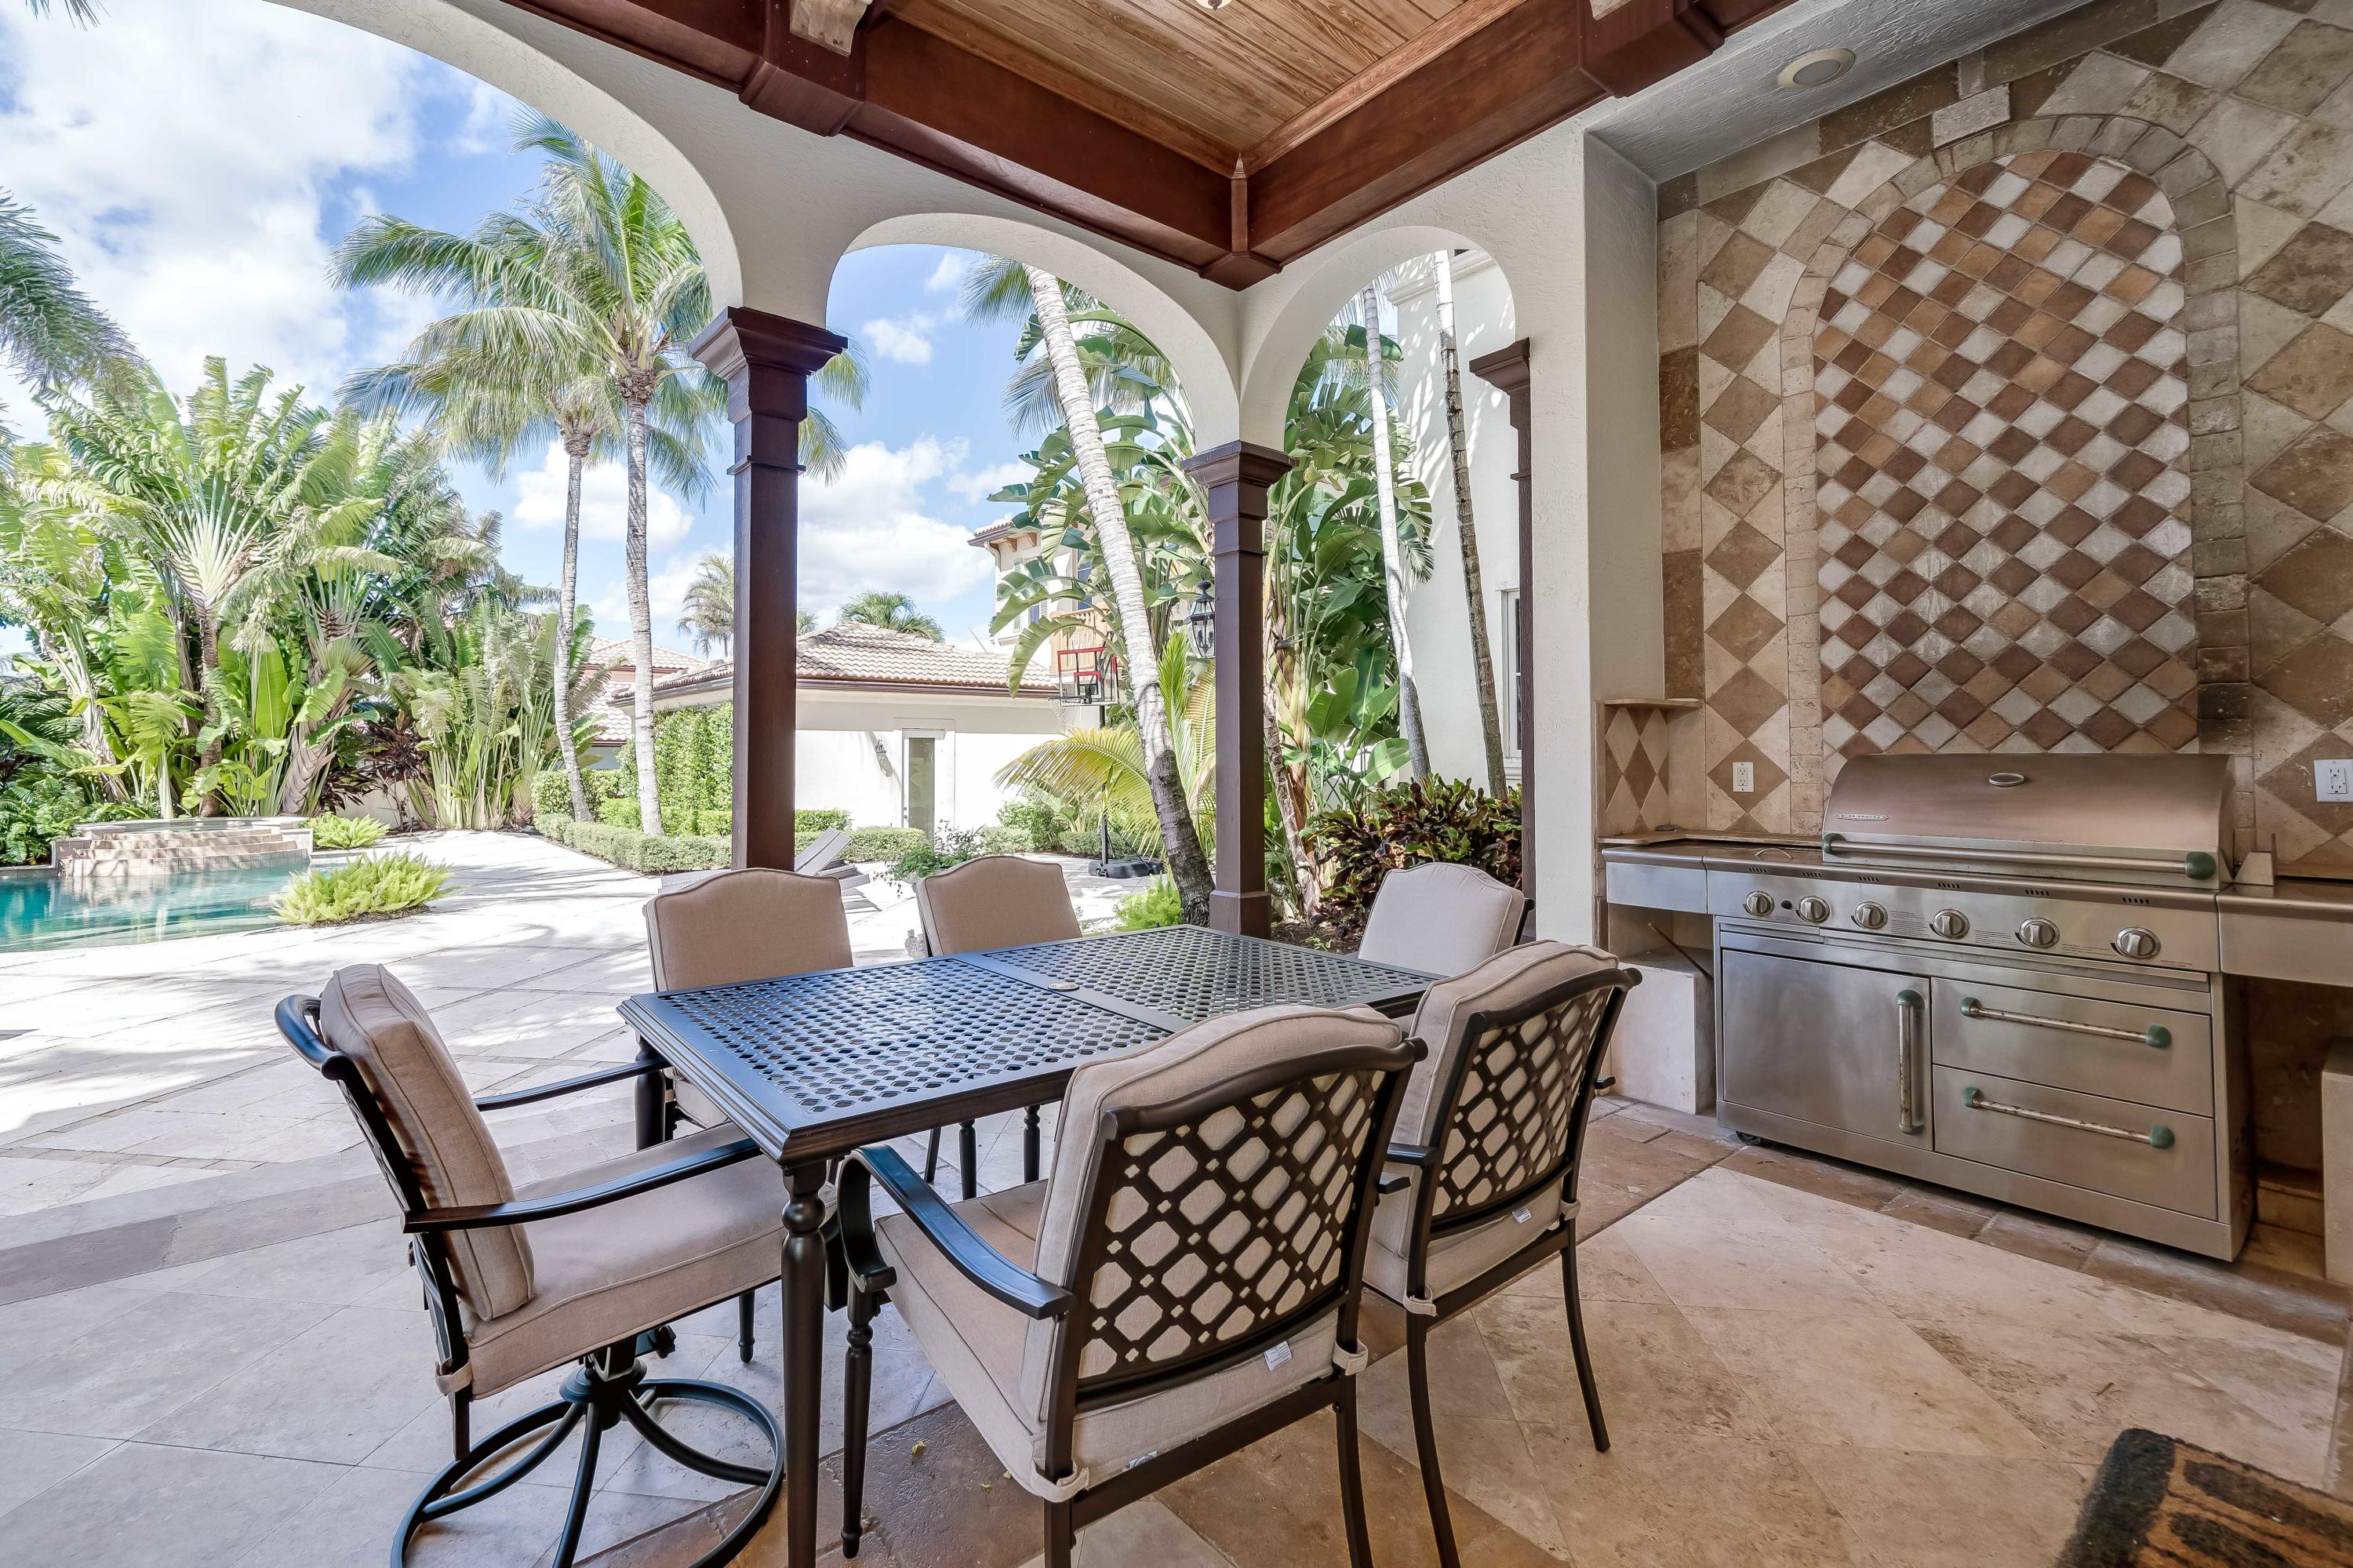 710 Ocean Boulevard, Delray Beach, Florida 33483, 7 Bedrooms Bedrooms, ,6.1 BathroomsBathrooms,Single Family,For Sale,Ocean,RX-10512536